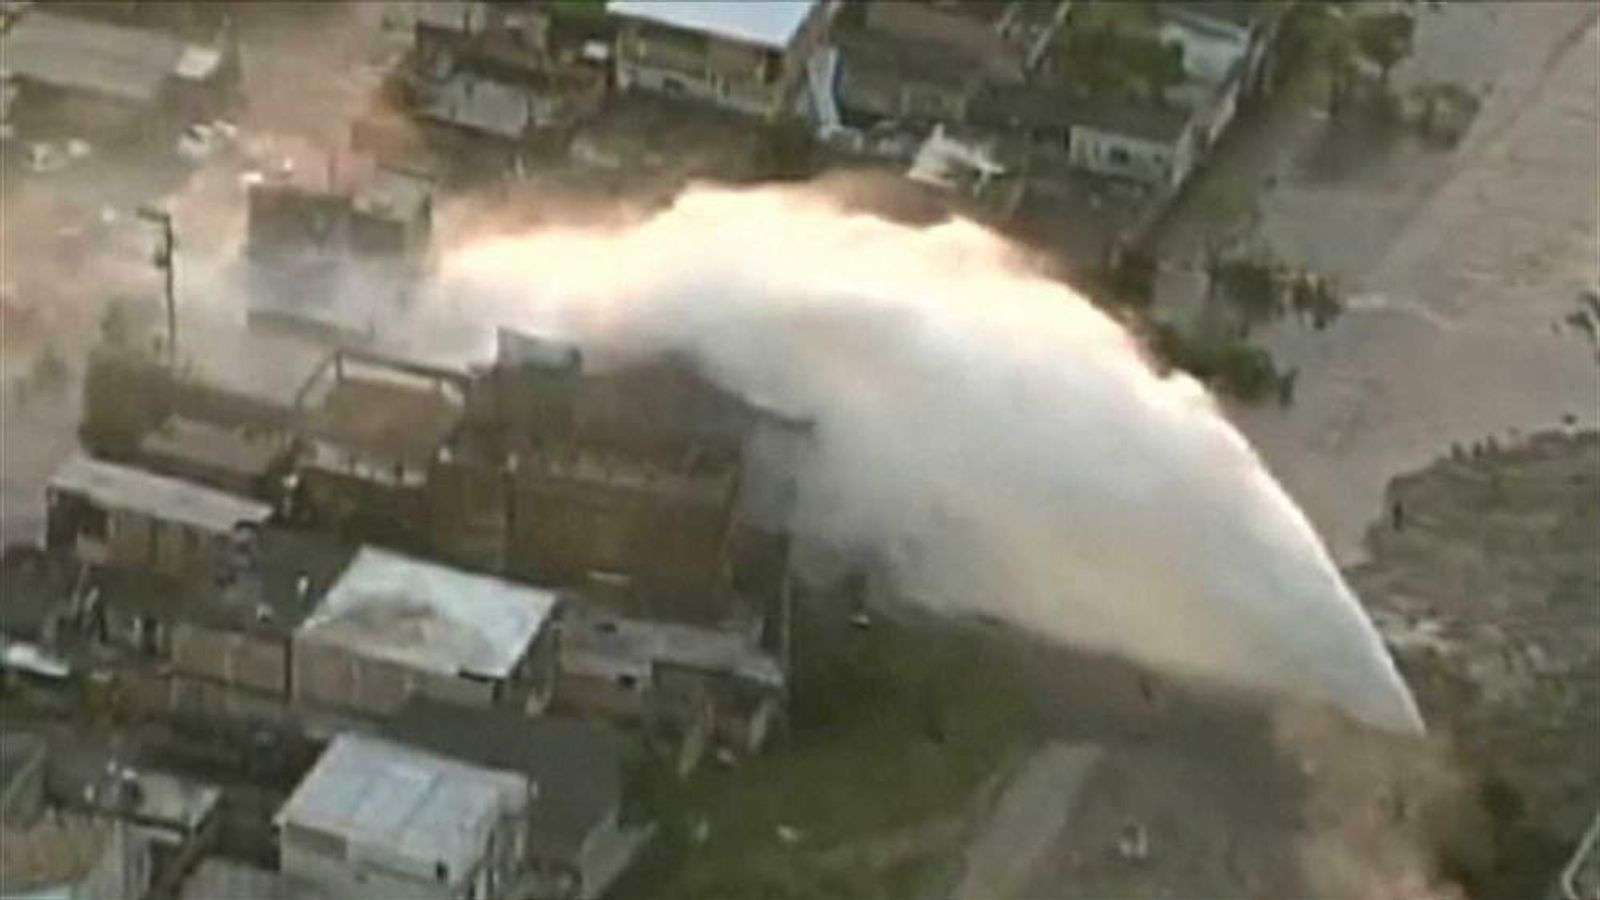 Brazil burst water main